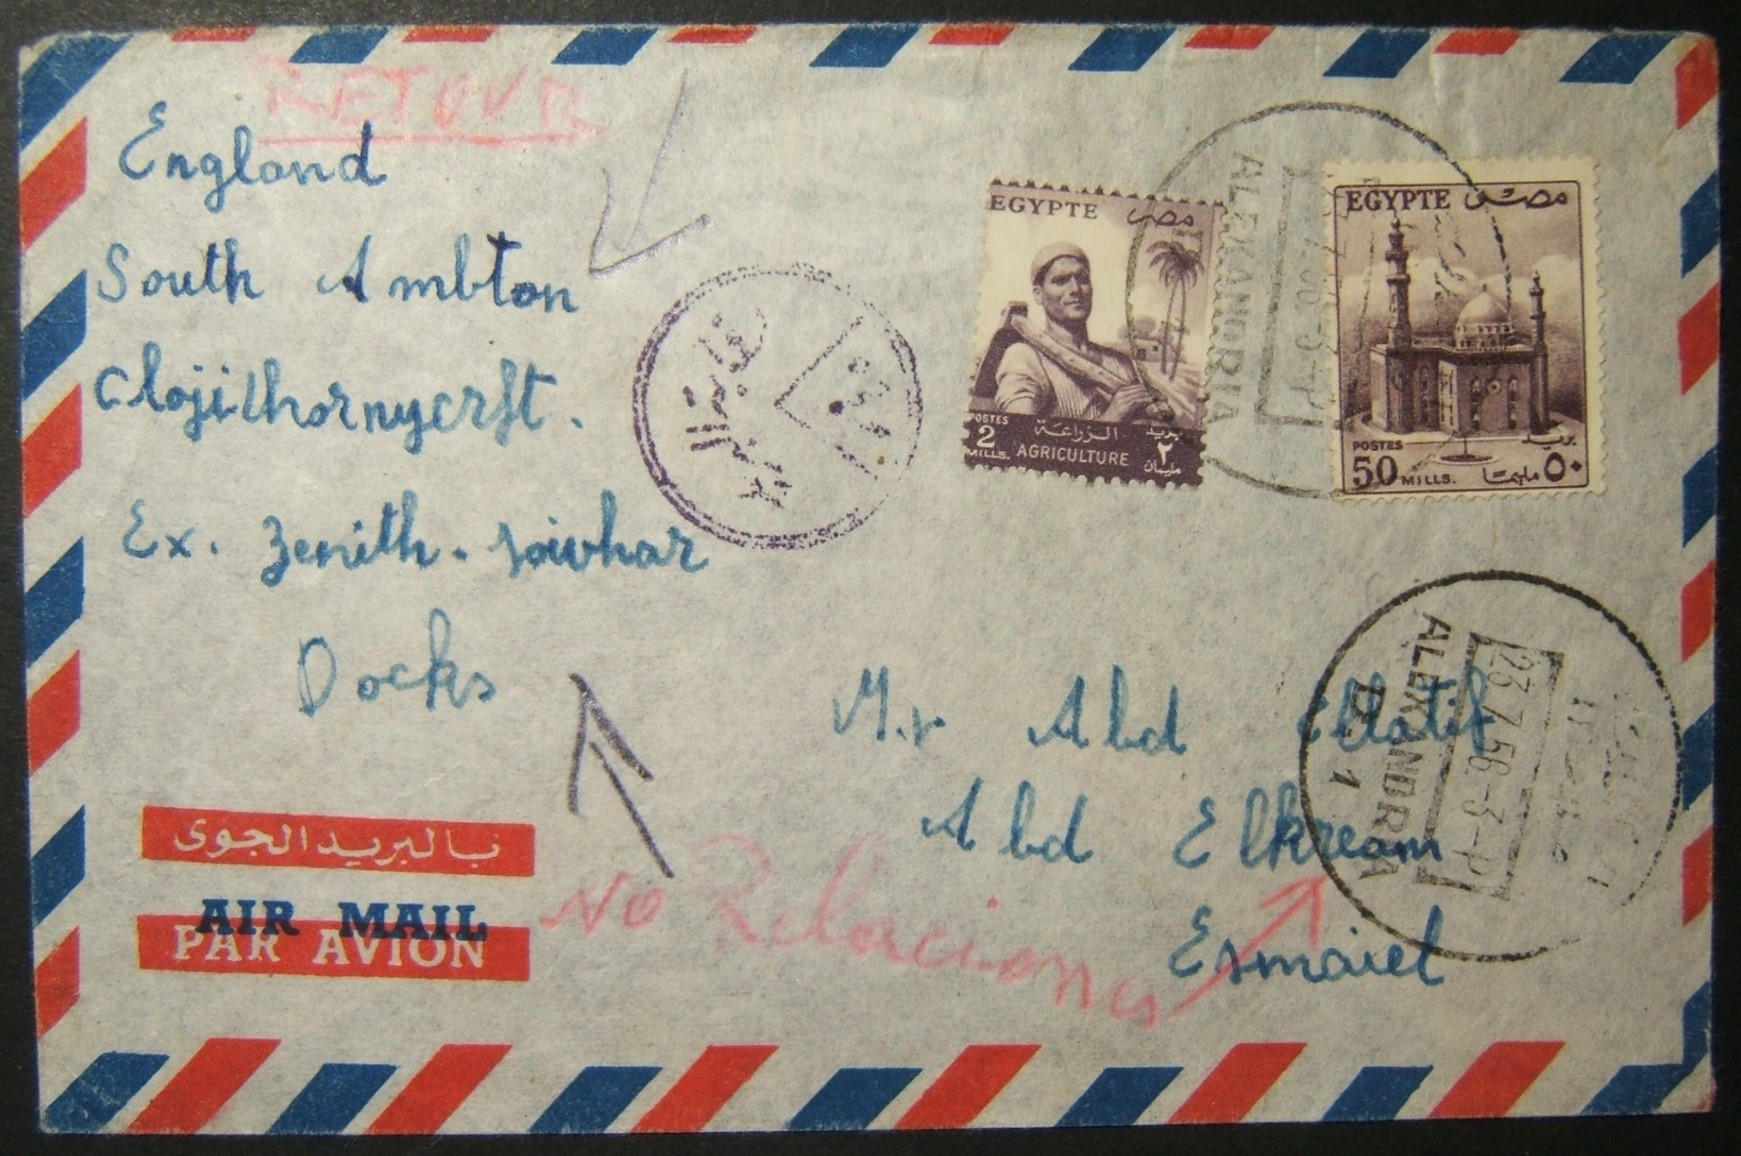 7/1956 Egyptian airmail to UK rejected as addressed to Israel, sent to UK then Israel